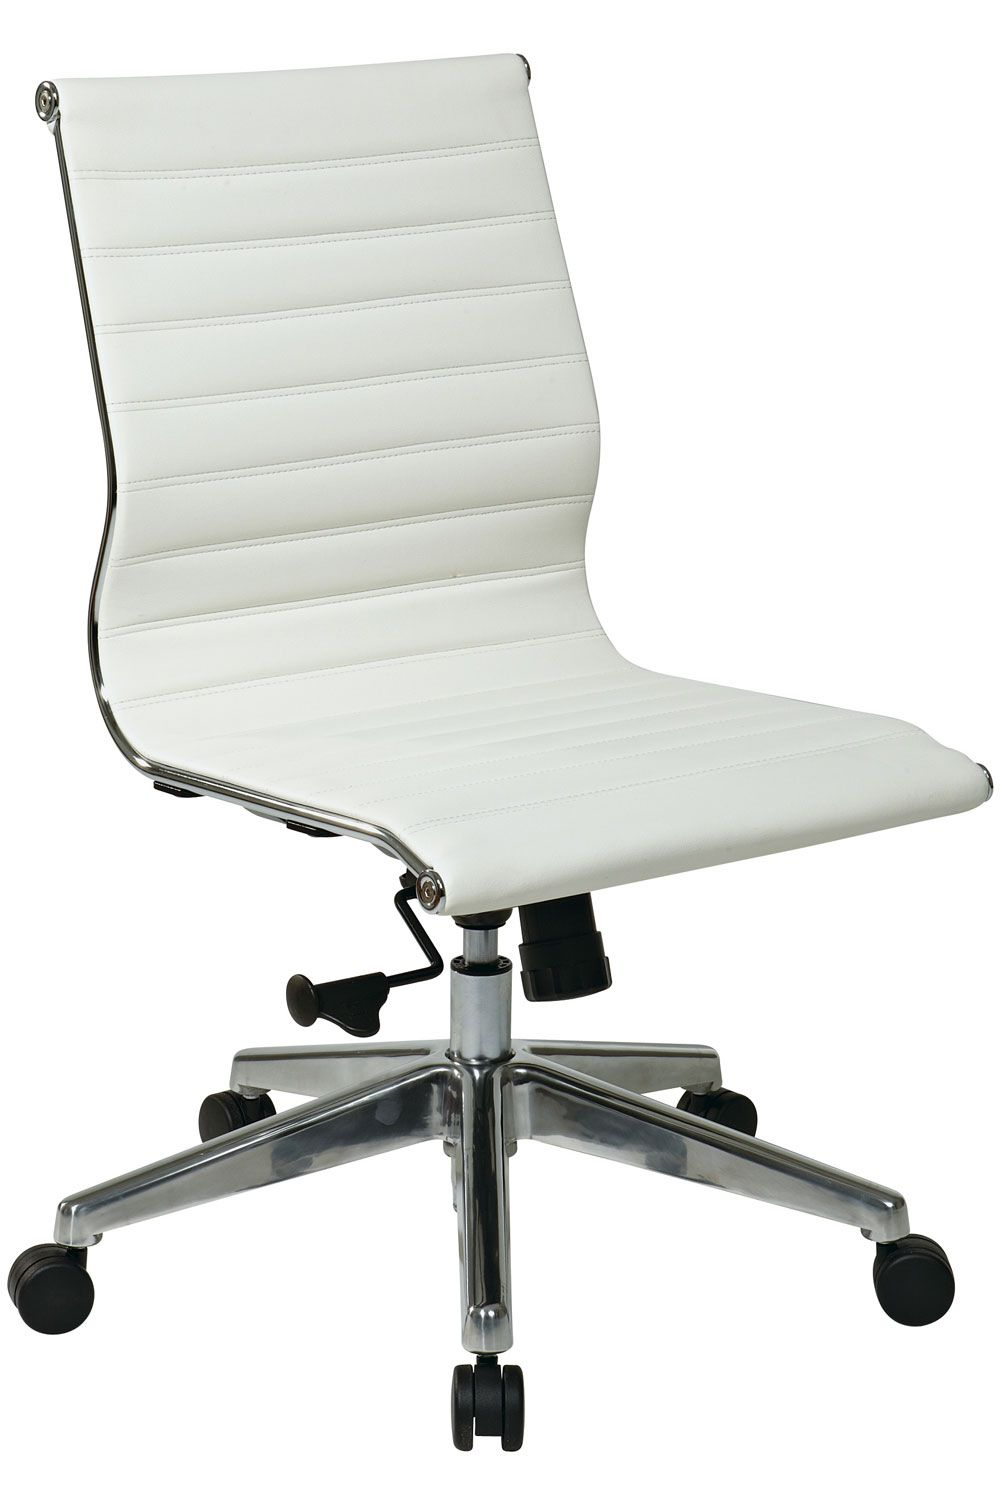 Superieur Awesome Amazing Office Chairs Without Arms 88 For Your Home Design Ideas  With Office Chairs Without Arms